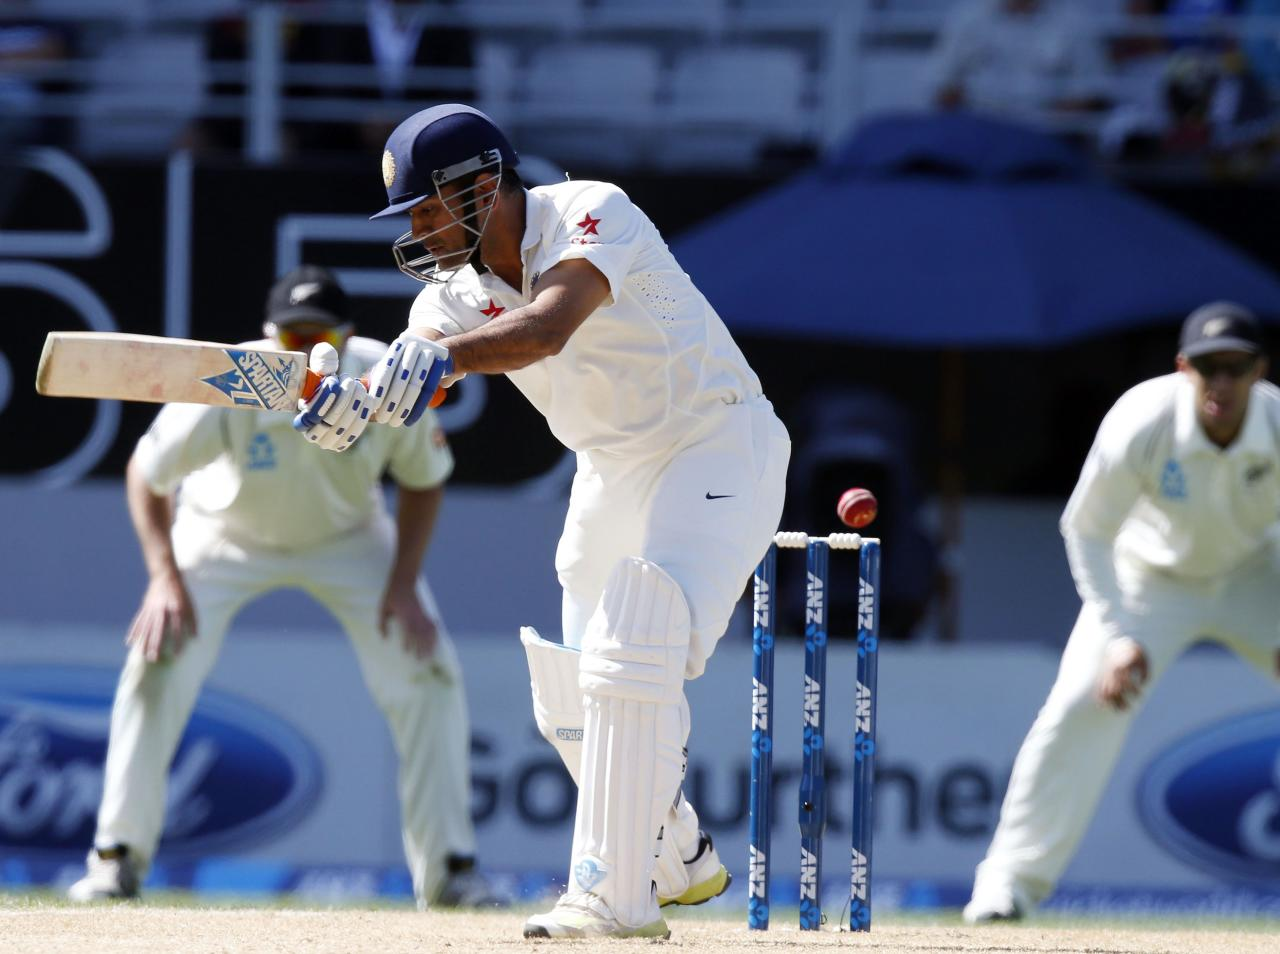 India's MS Dhoni misses the ball during his second innings on day four of the first international test cricket match against New Zealand, at Eden Park in Auckland, February 9, 2014. REUTERS/Nigel Marple (NEW ZEALAND - Tags: SPORT CRICKET)